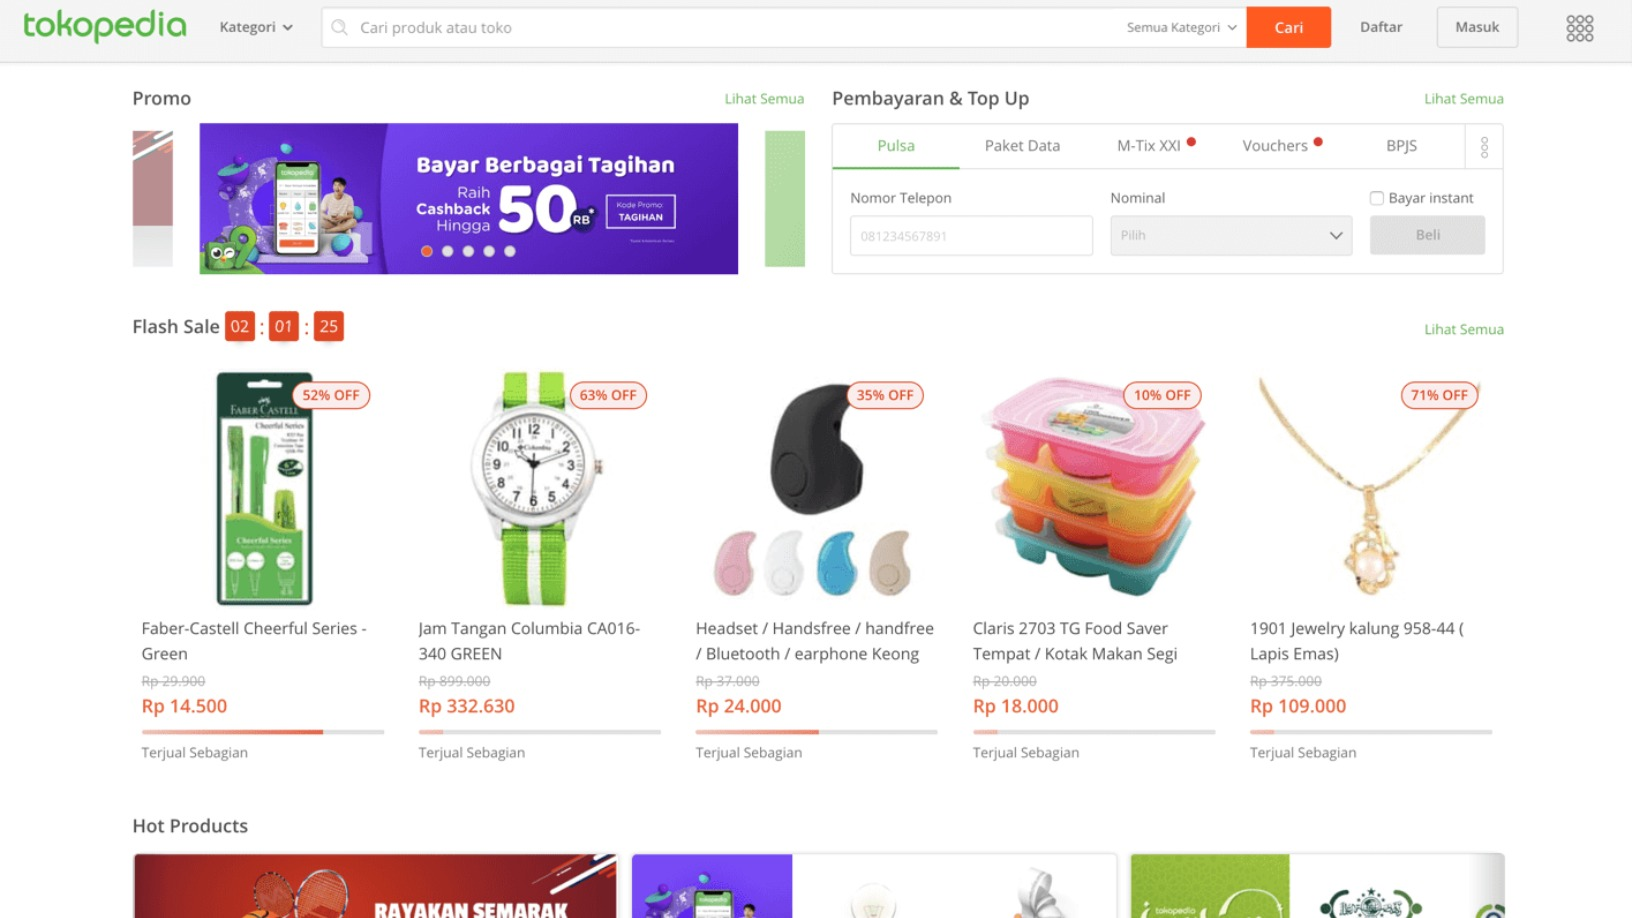 Tokopedia gets hacked, 91m customer records for sale on the dark web